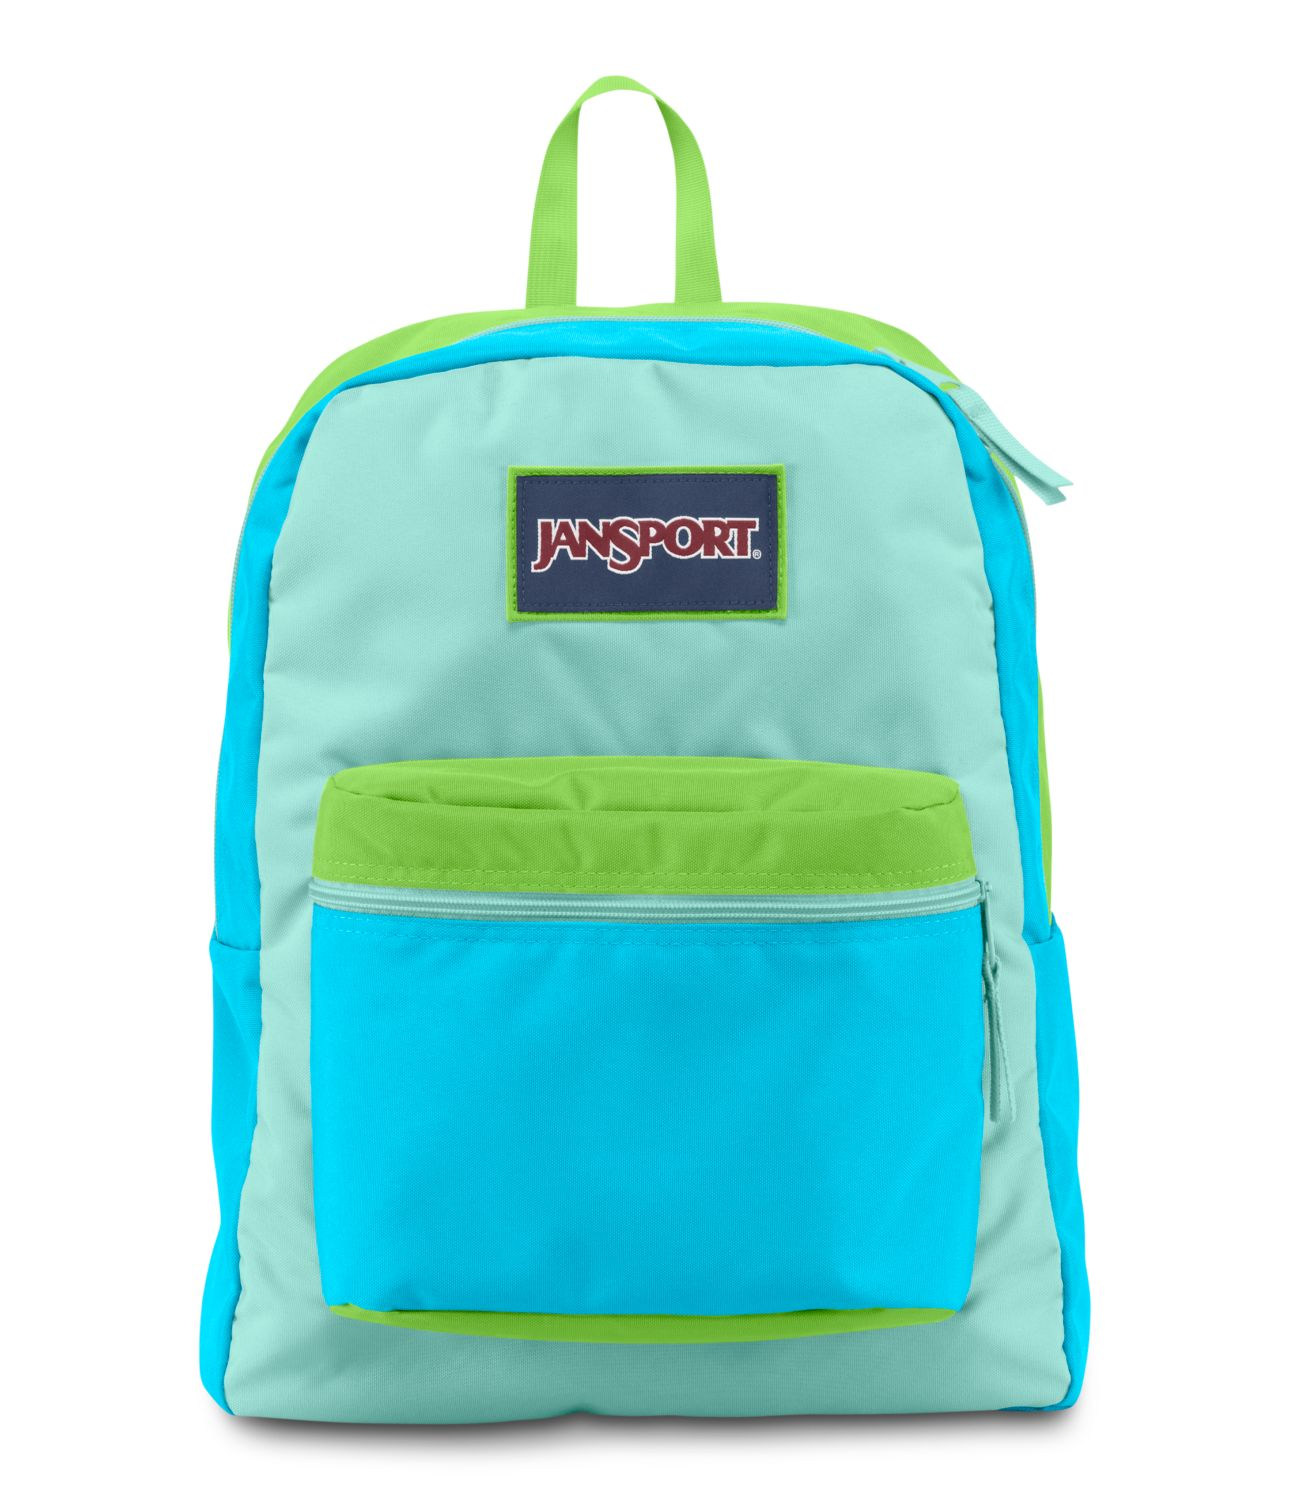 JanSport Overexposed School Backpack - MAMMOTH BLUE/AQUA DASH/ZAP ...